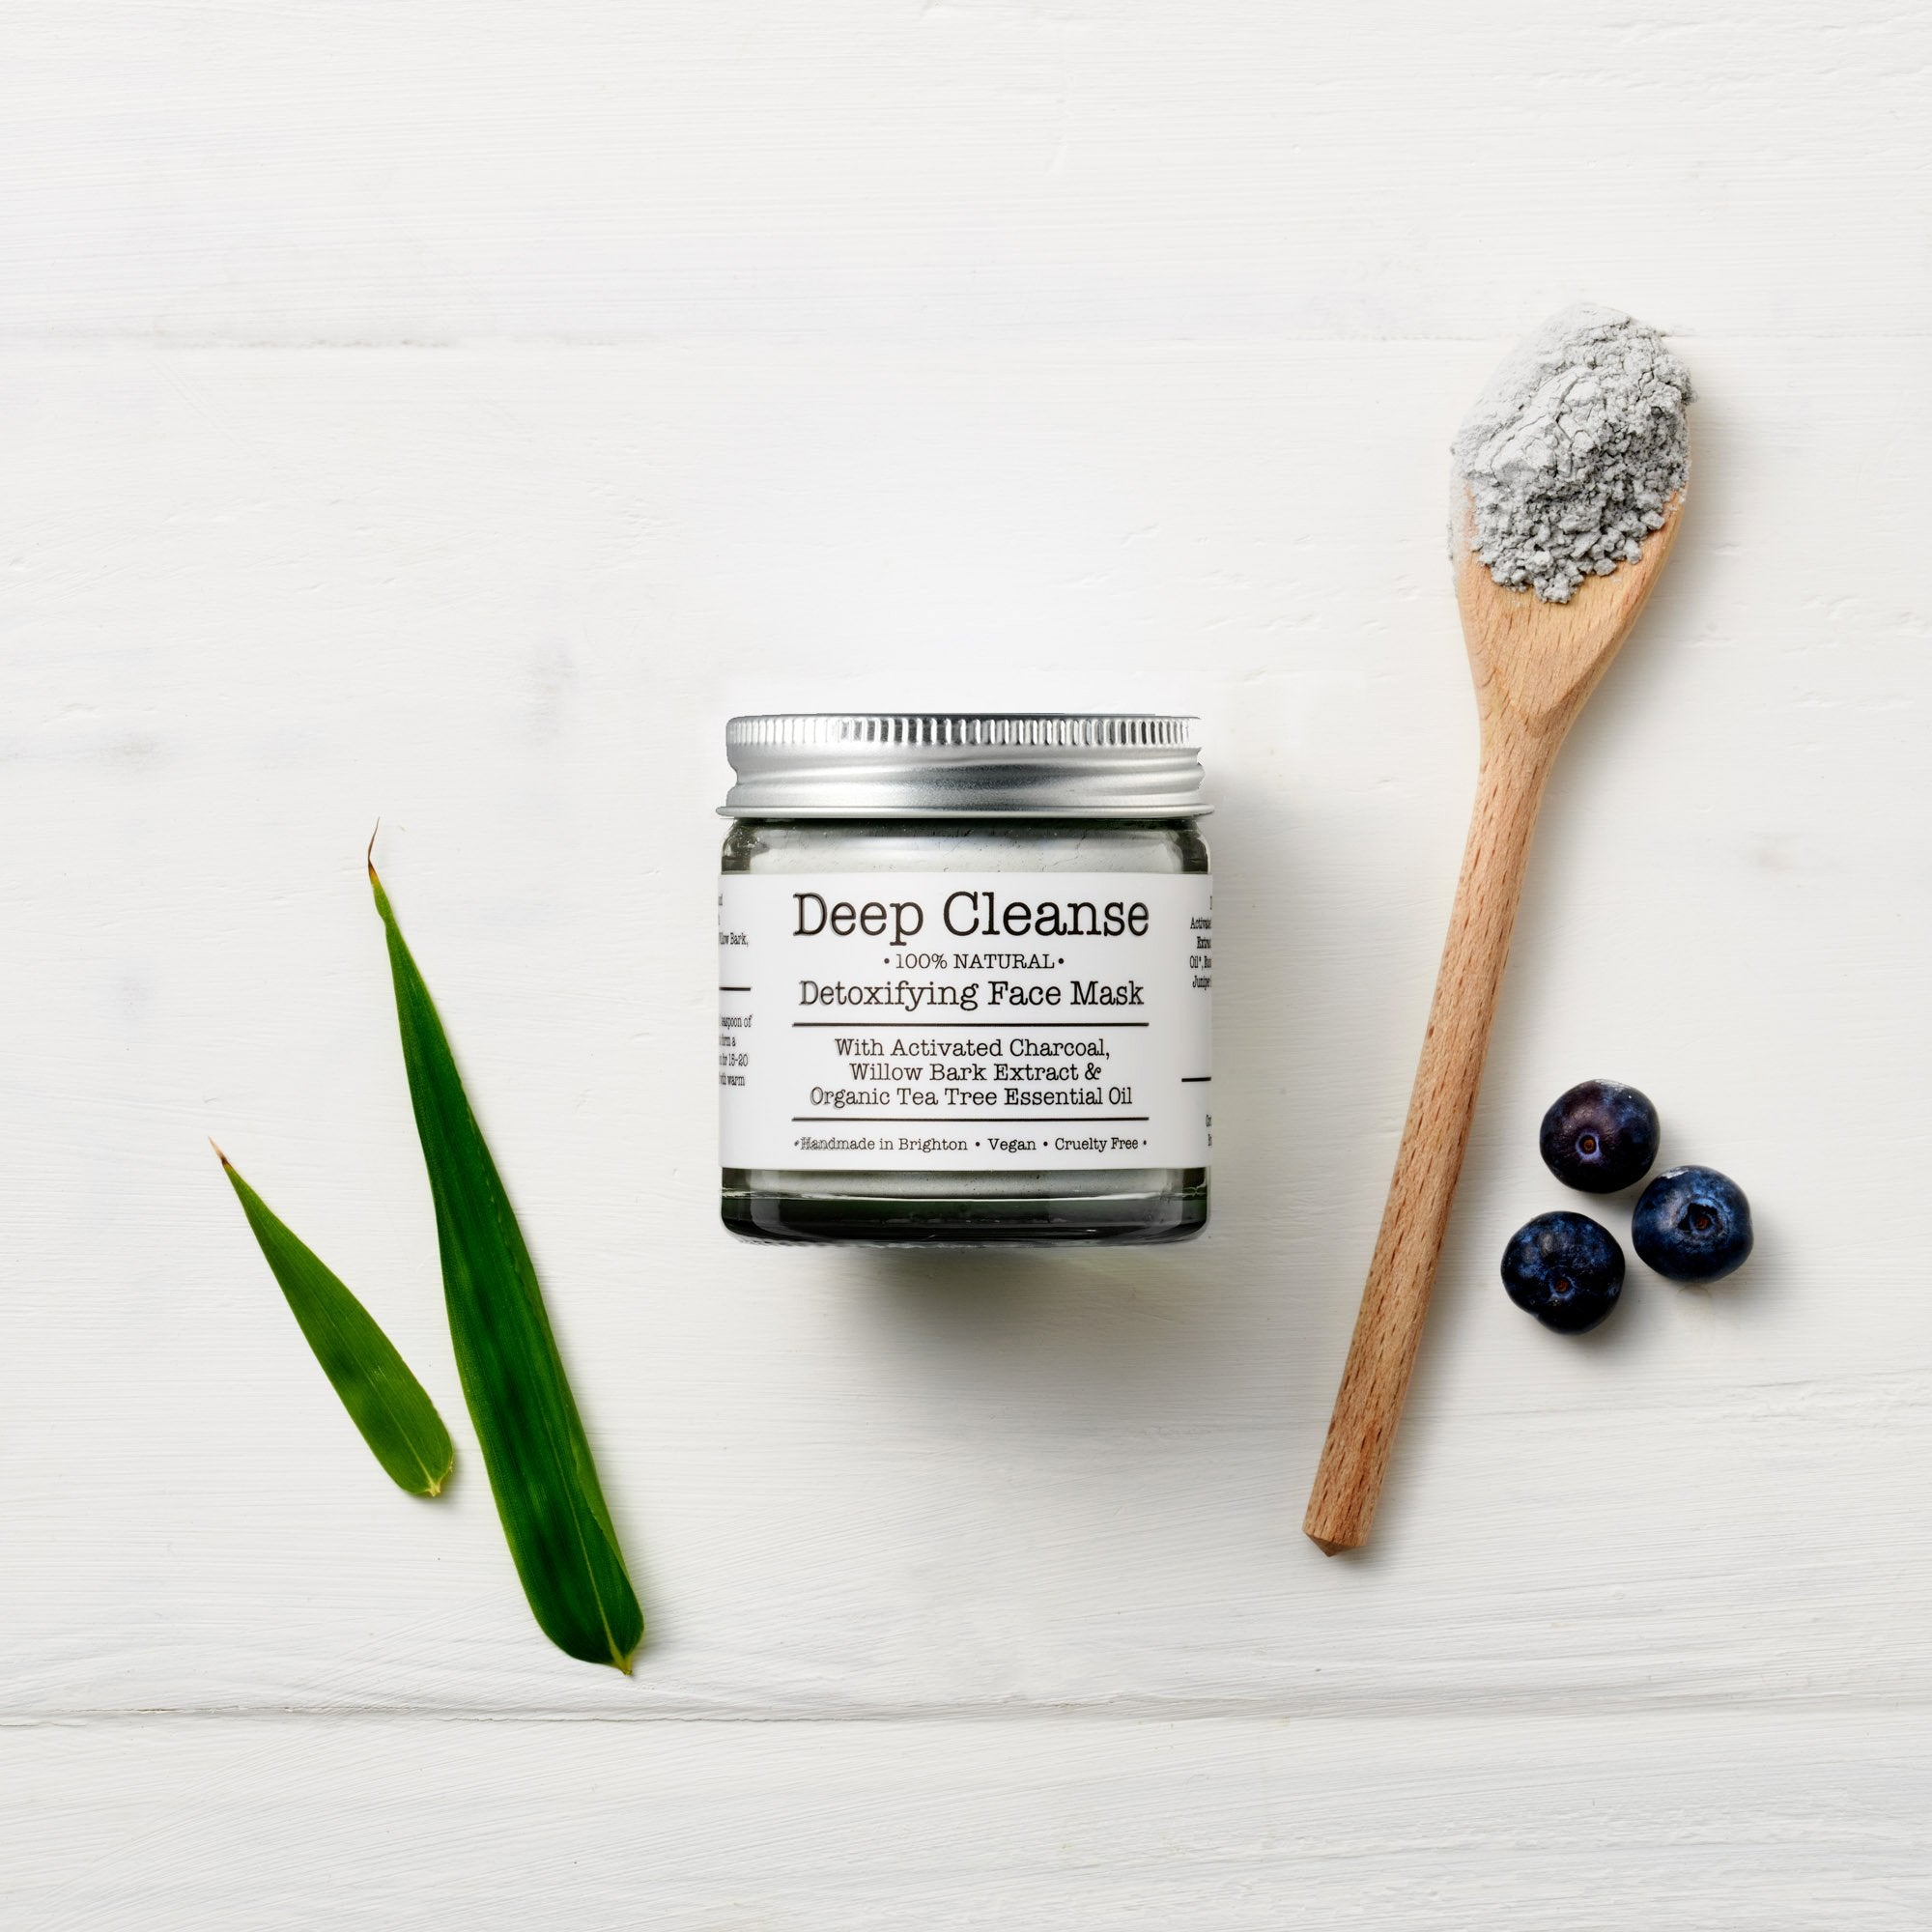 Deep Cleanse mineral botanical face mask by Corinne Taylor. 100% natural, vegan, plant based, cruelty free. Formulated with a mixture of Bentonite Clay, Kaolin and Activated Charcoal and an anti bacterial blend of organic Tea Tree, Eucalyptus & Juniper Berry essential oils.